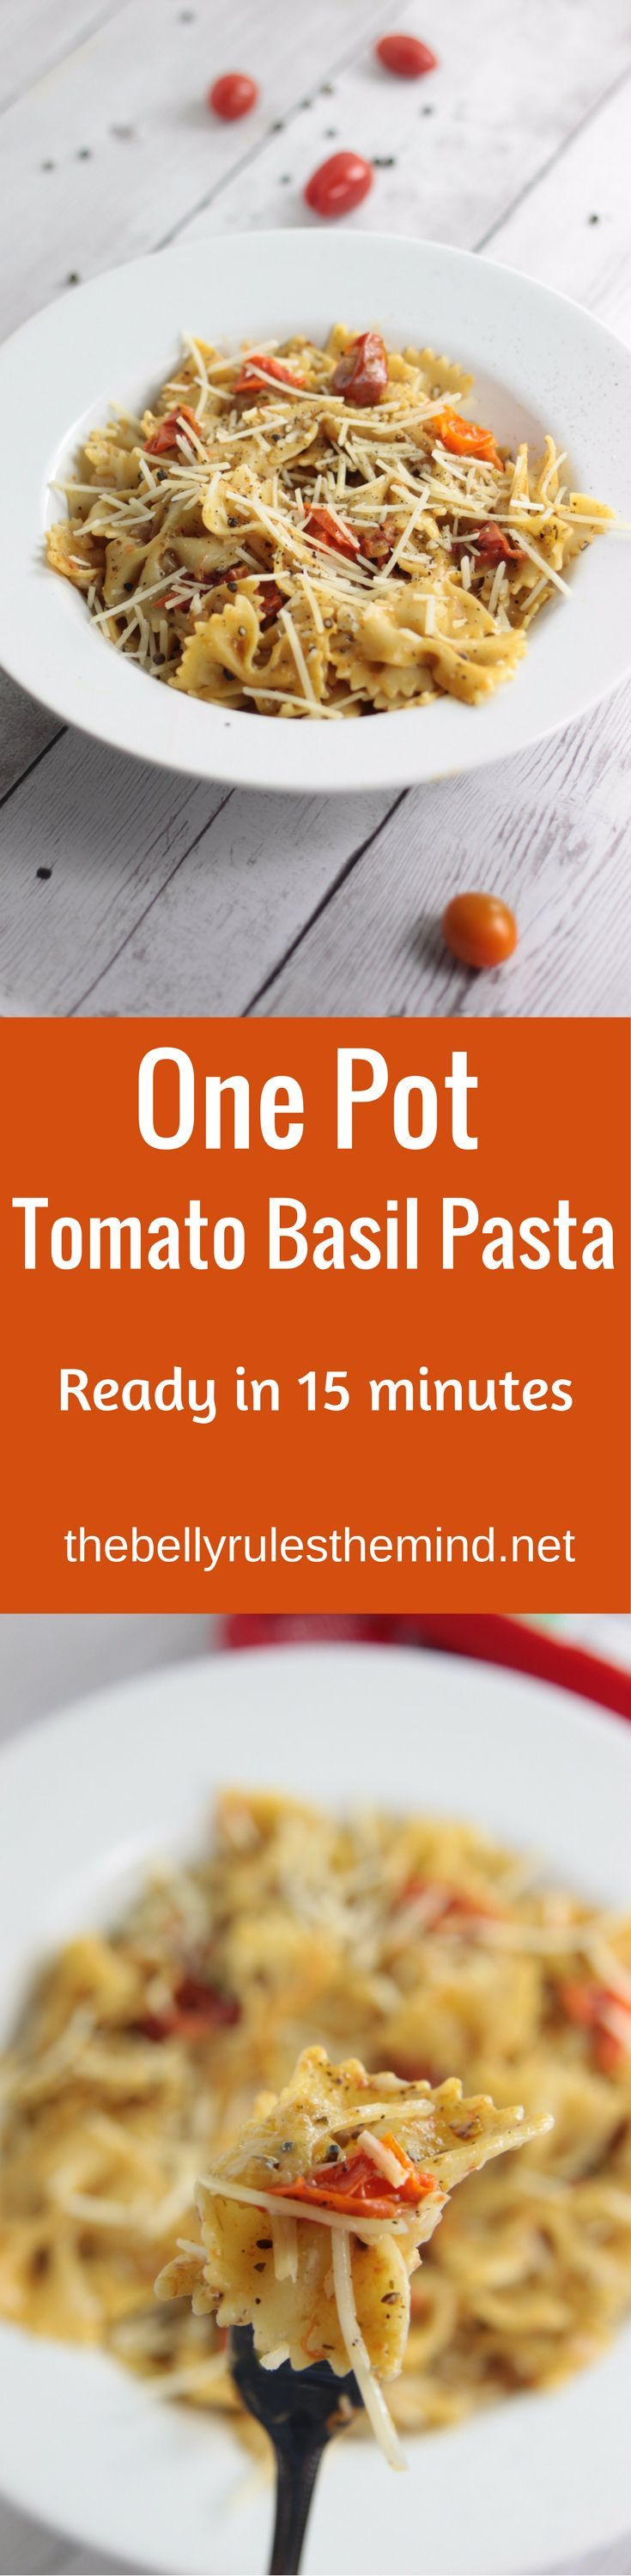 The easiest ever one pot pasta recipe for a quick weeknight dinner using Dorot. A perfect summer meal with fresh flavors of Tomatoes and Basil ready in 15 minutes. |www.thebellyrulesthemind.net @bellyrulesdmind